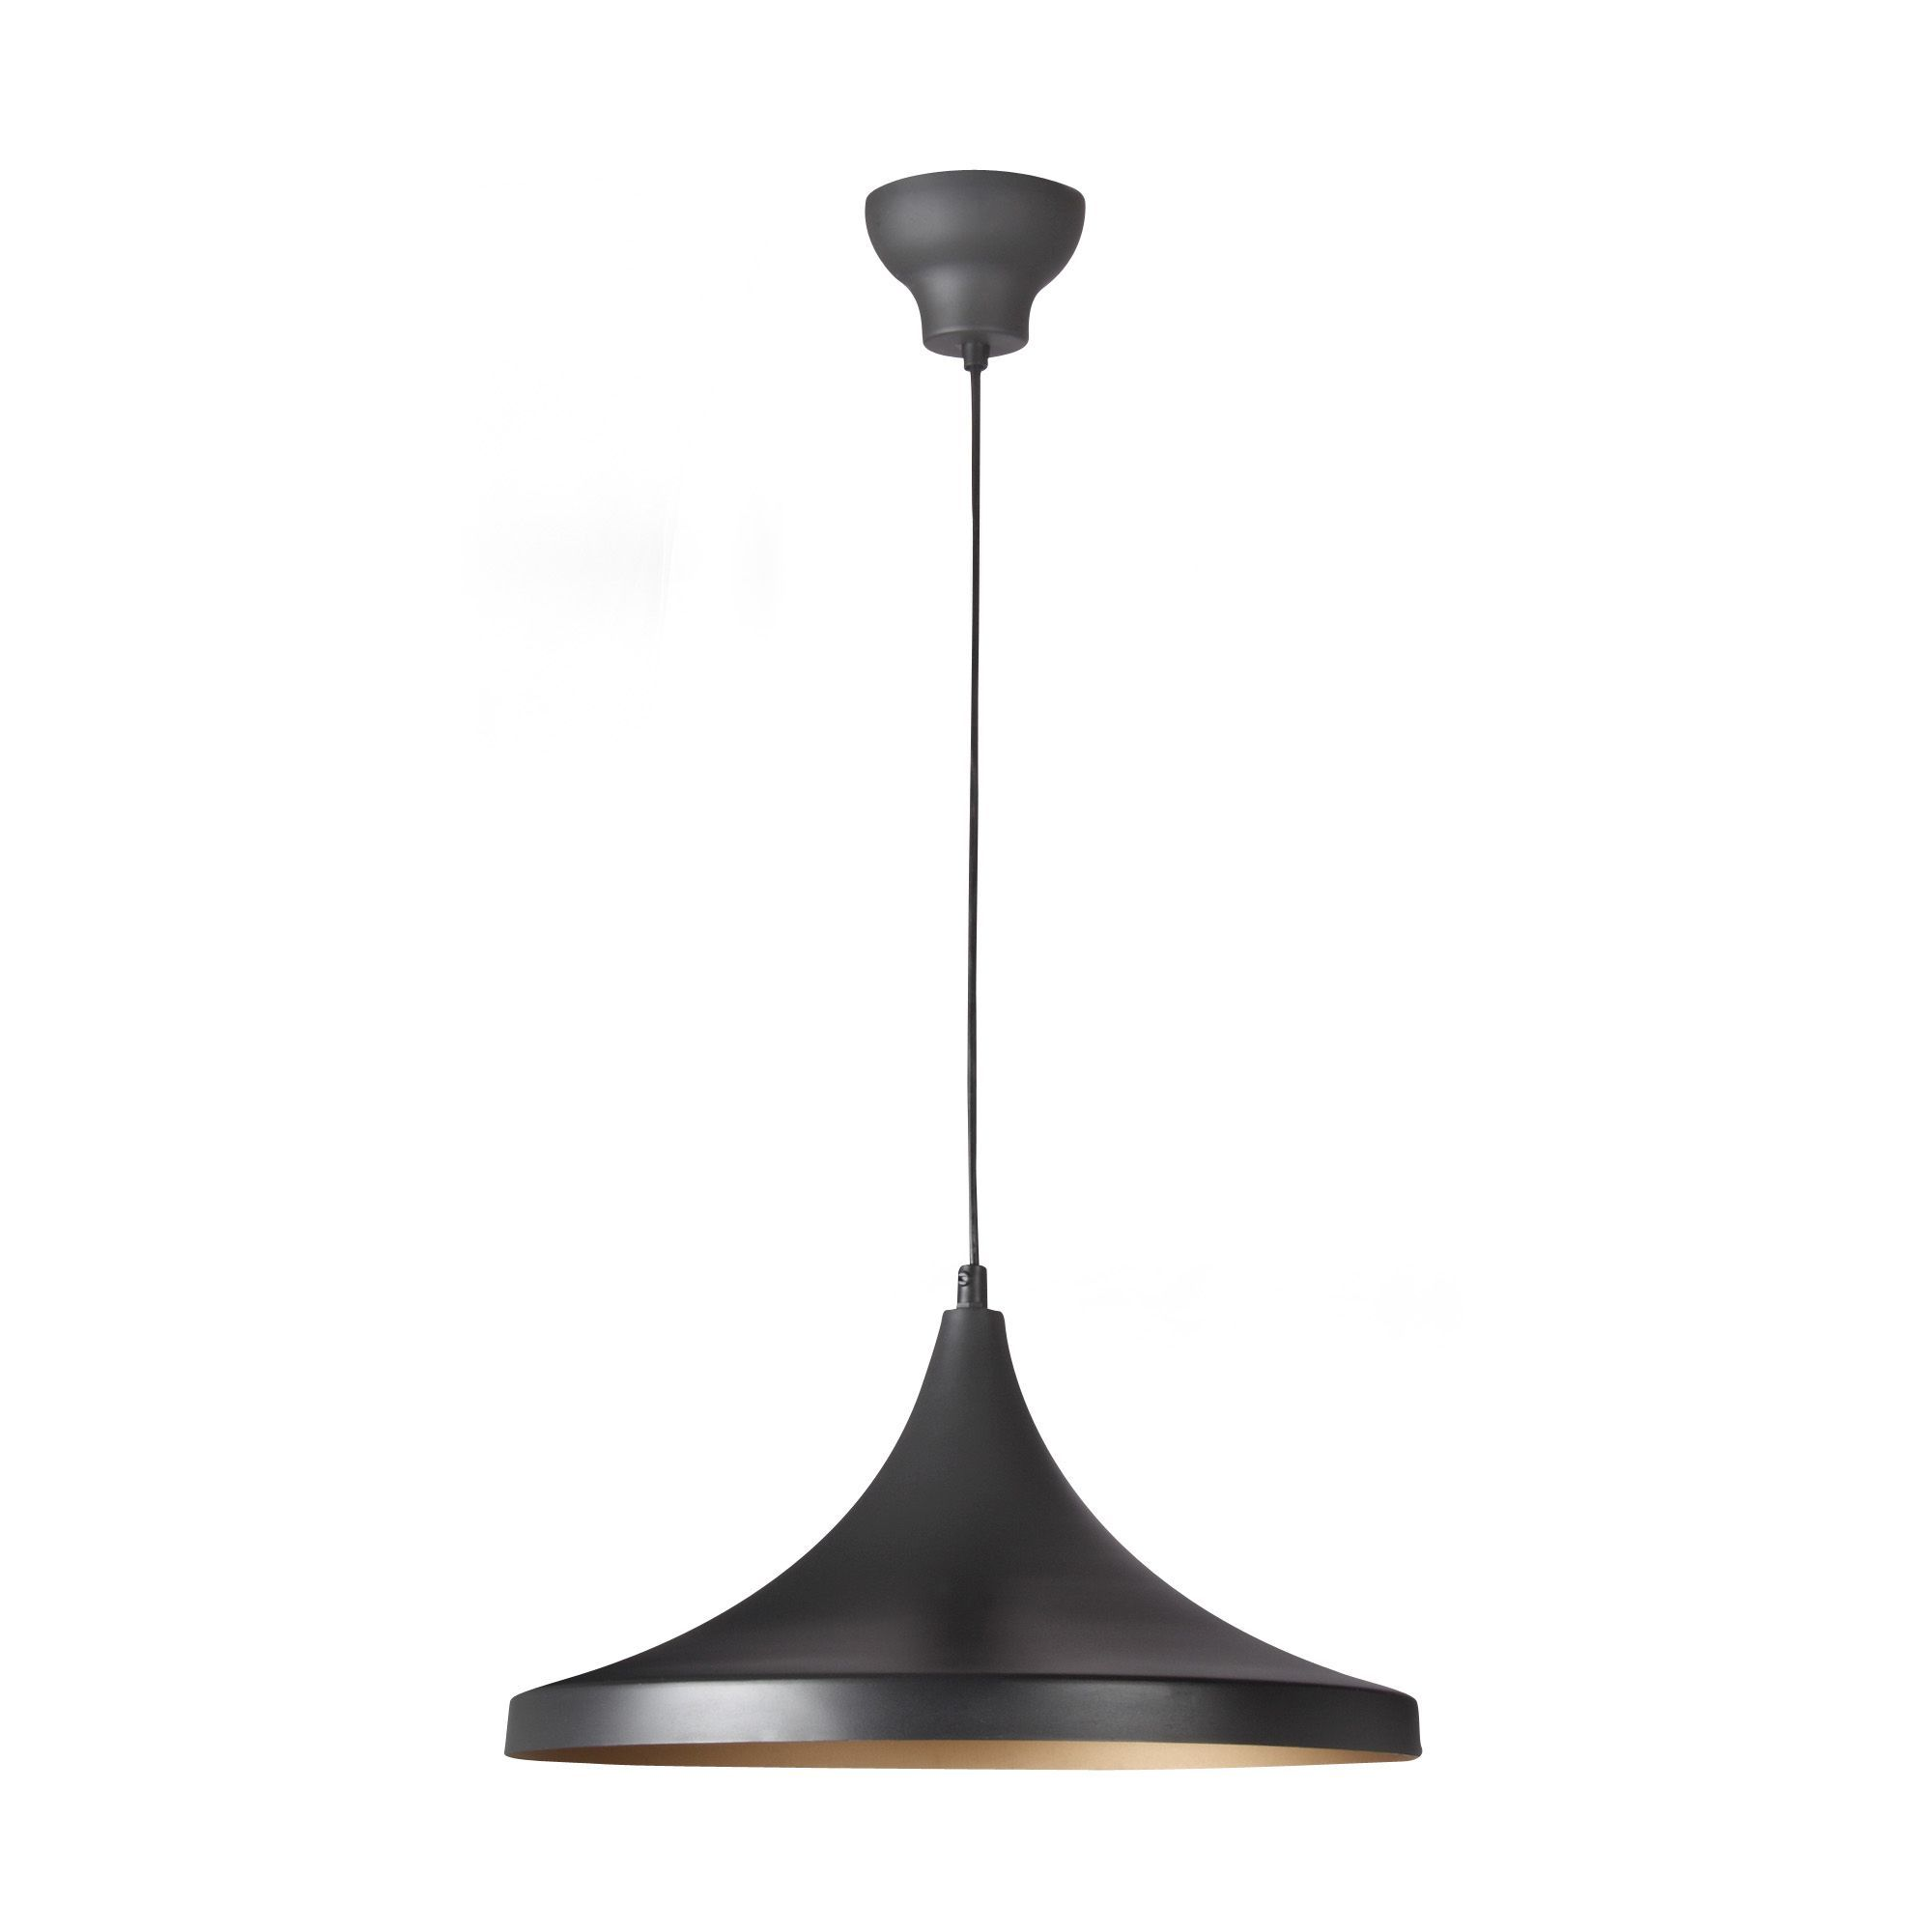 Suspension Luminaire Alinea Top Suspension Bicolore Noir Or Dcm Noiror Golden Les